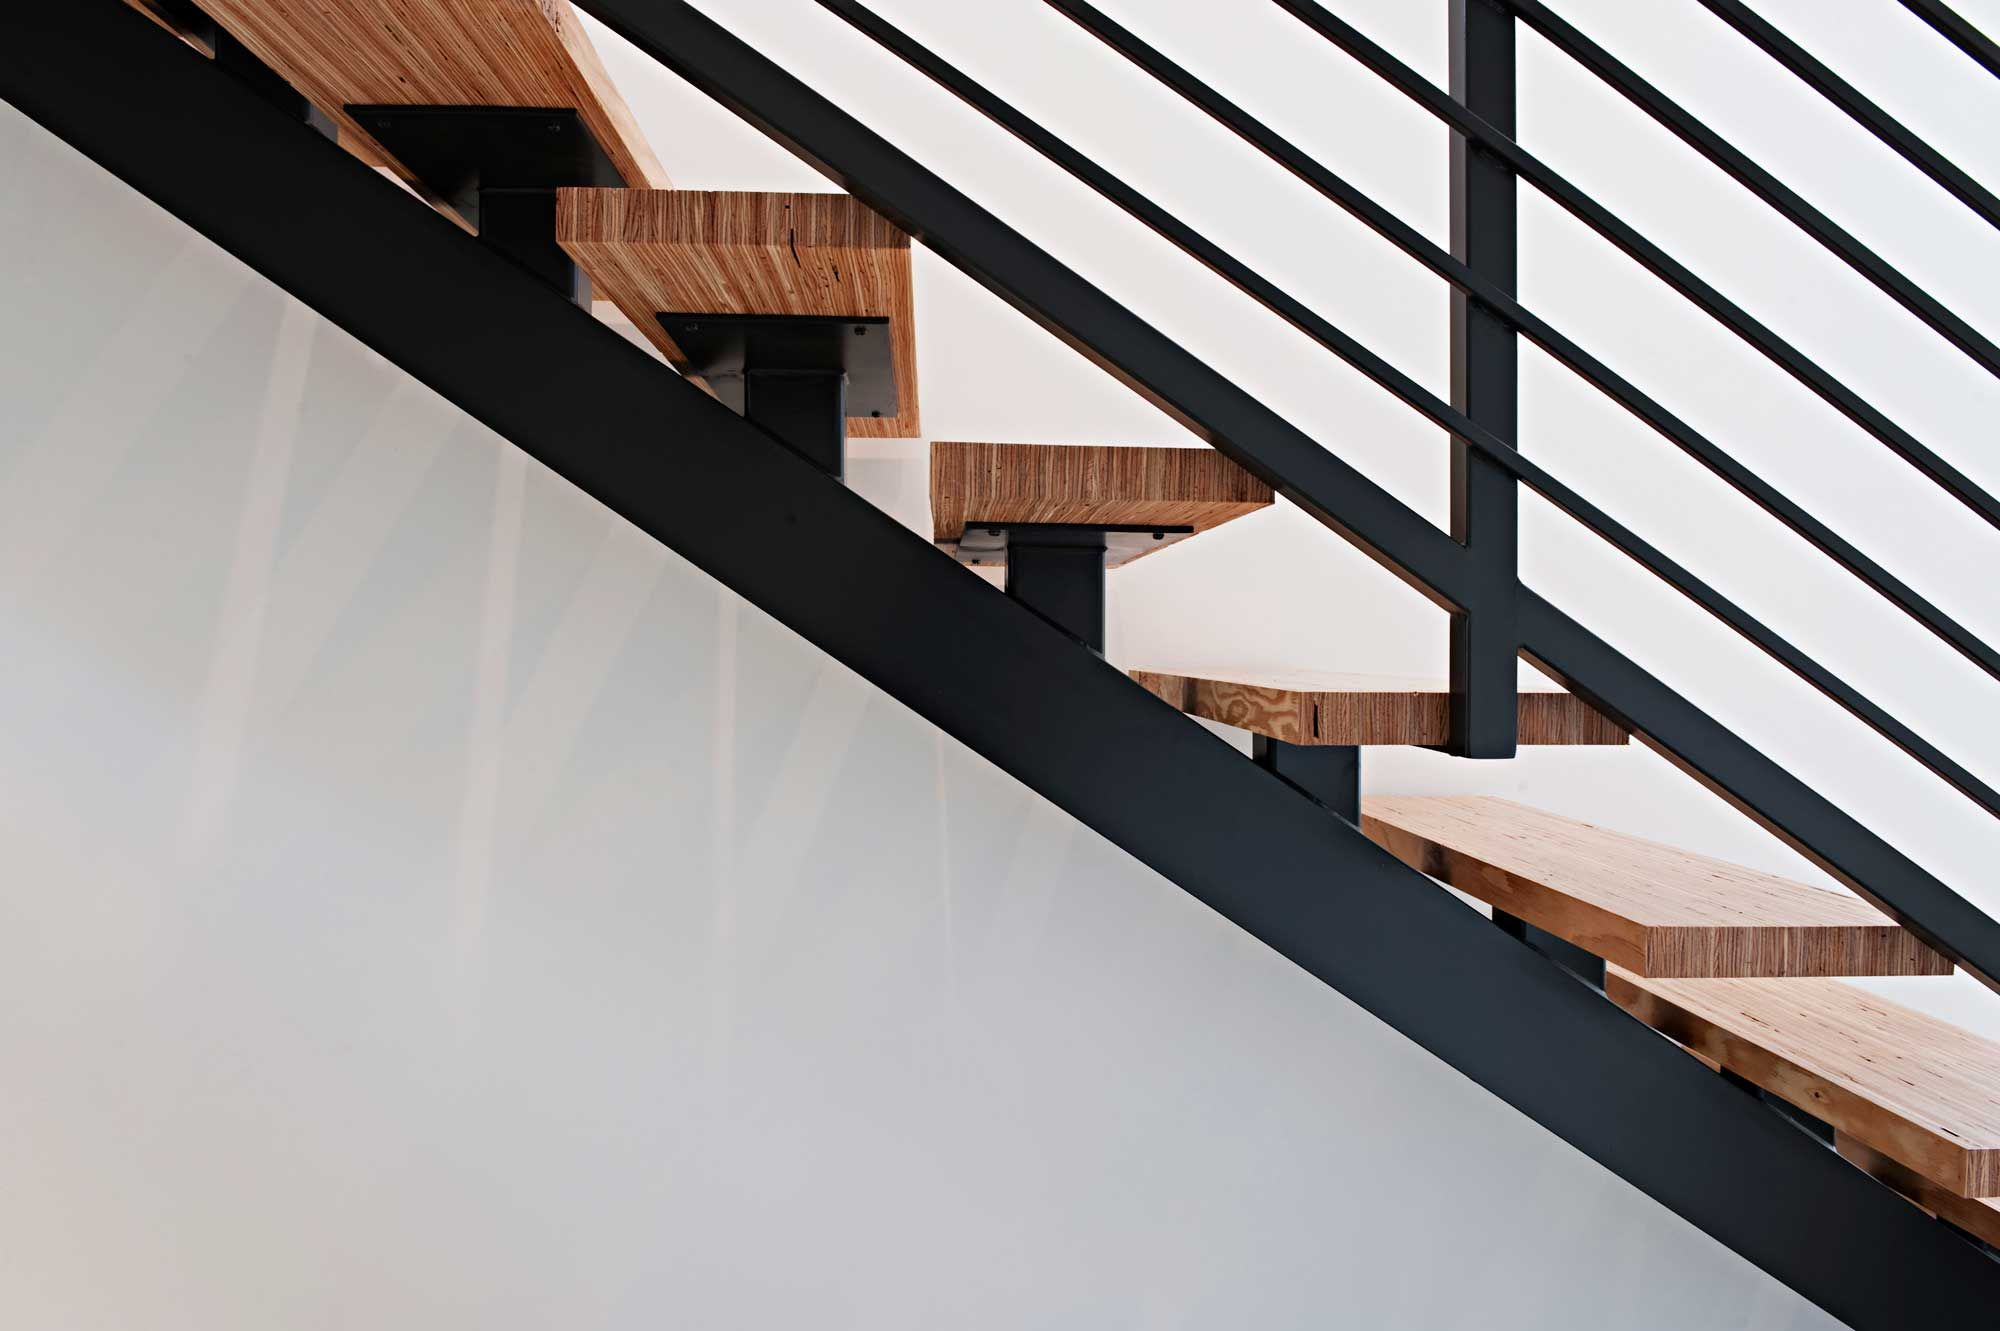 Tube Steel Stringer Stair With Wood Treads And Plate Steel Risers | Steel Stairs With Wood Treads | Wooden Stair | Glass | Exterior | Pine Wood Tread | Typical